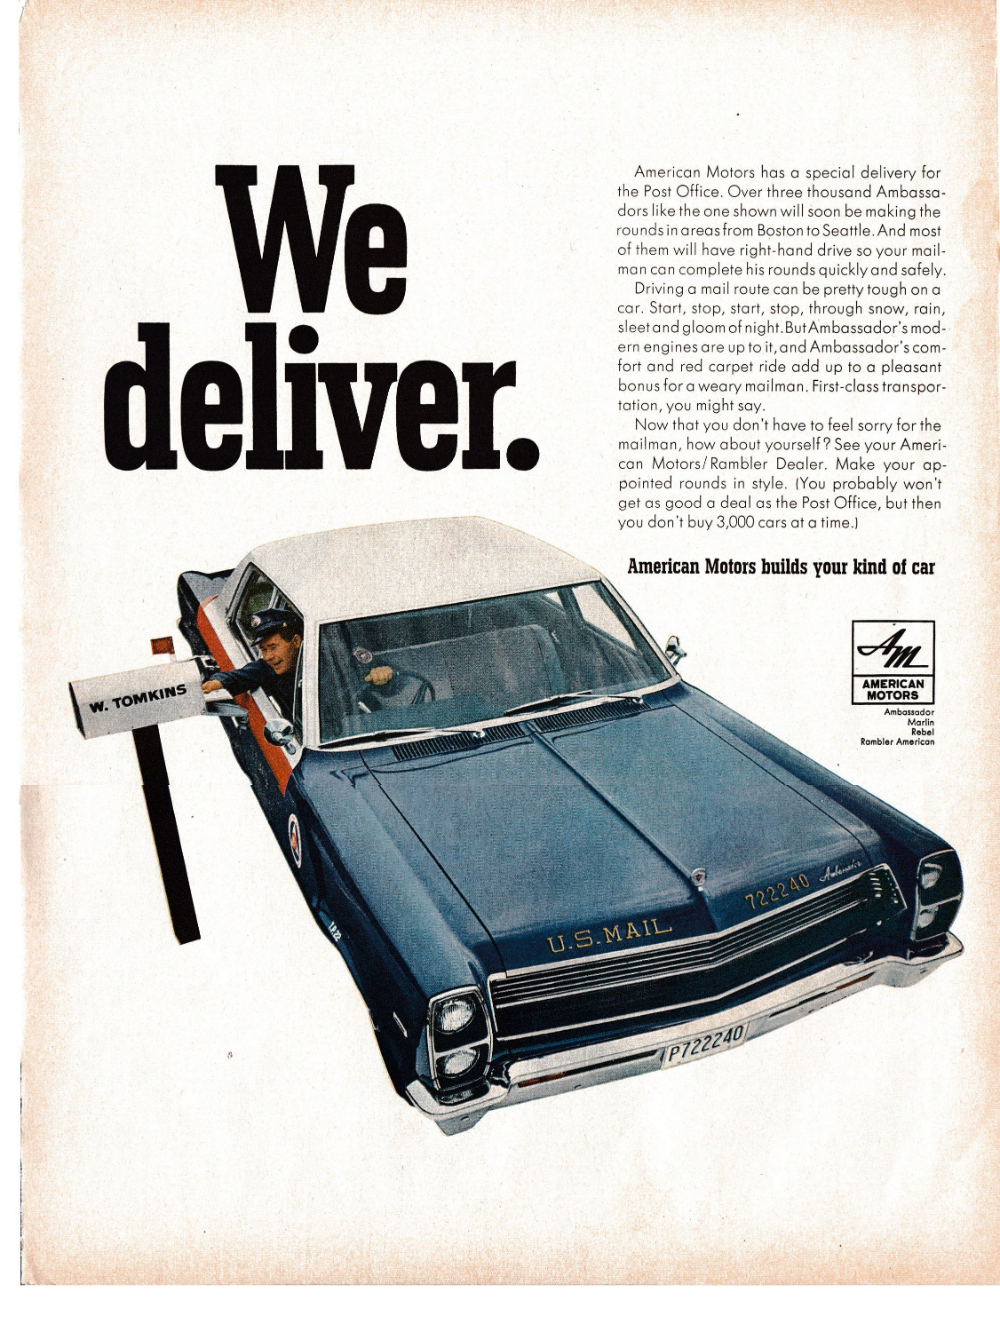 1967 Amc Ambassador Usps Vehicle Right Hand Drive Original Etsy